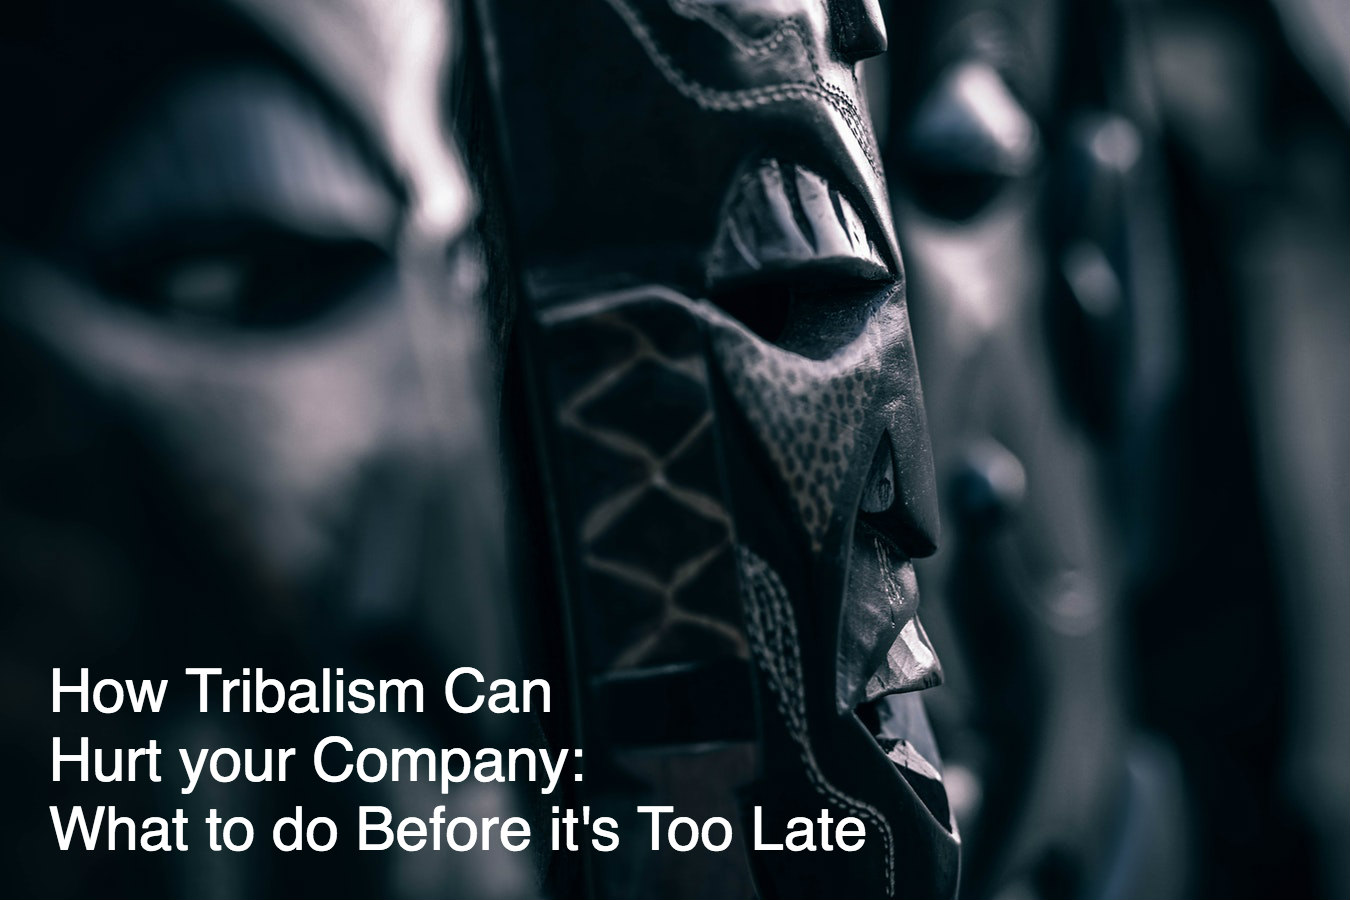 How tribalism can hurt your company: What to do before it's too late